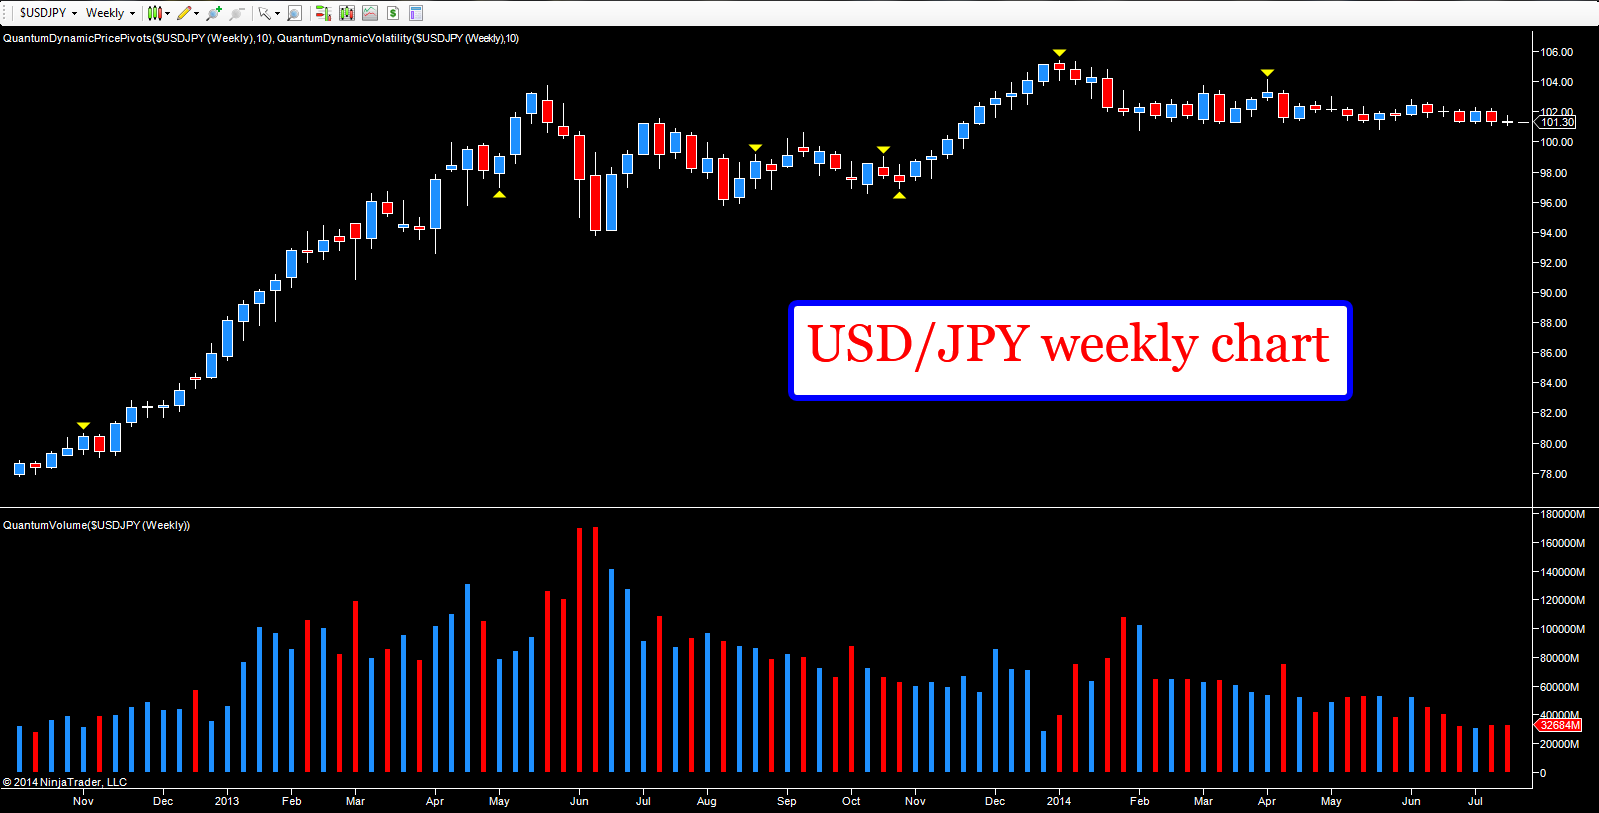 USD/JPY - weekly chart